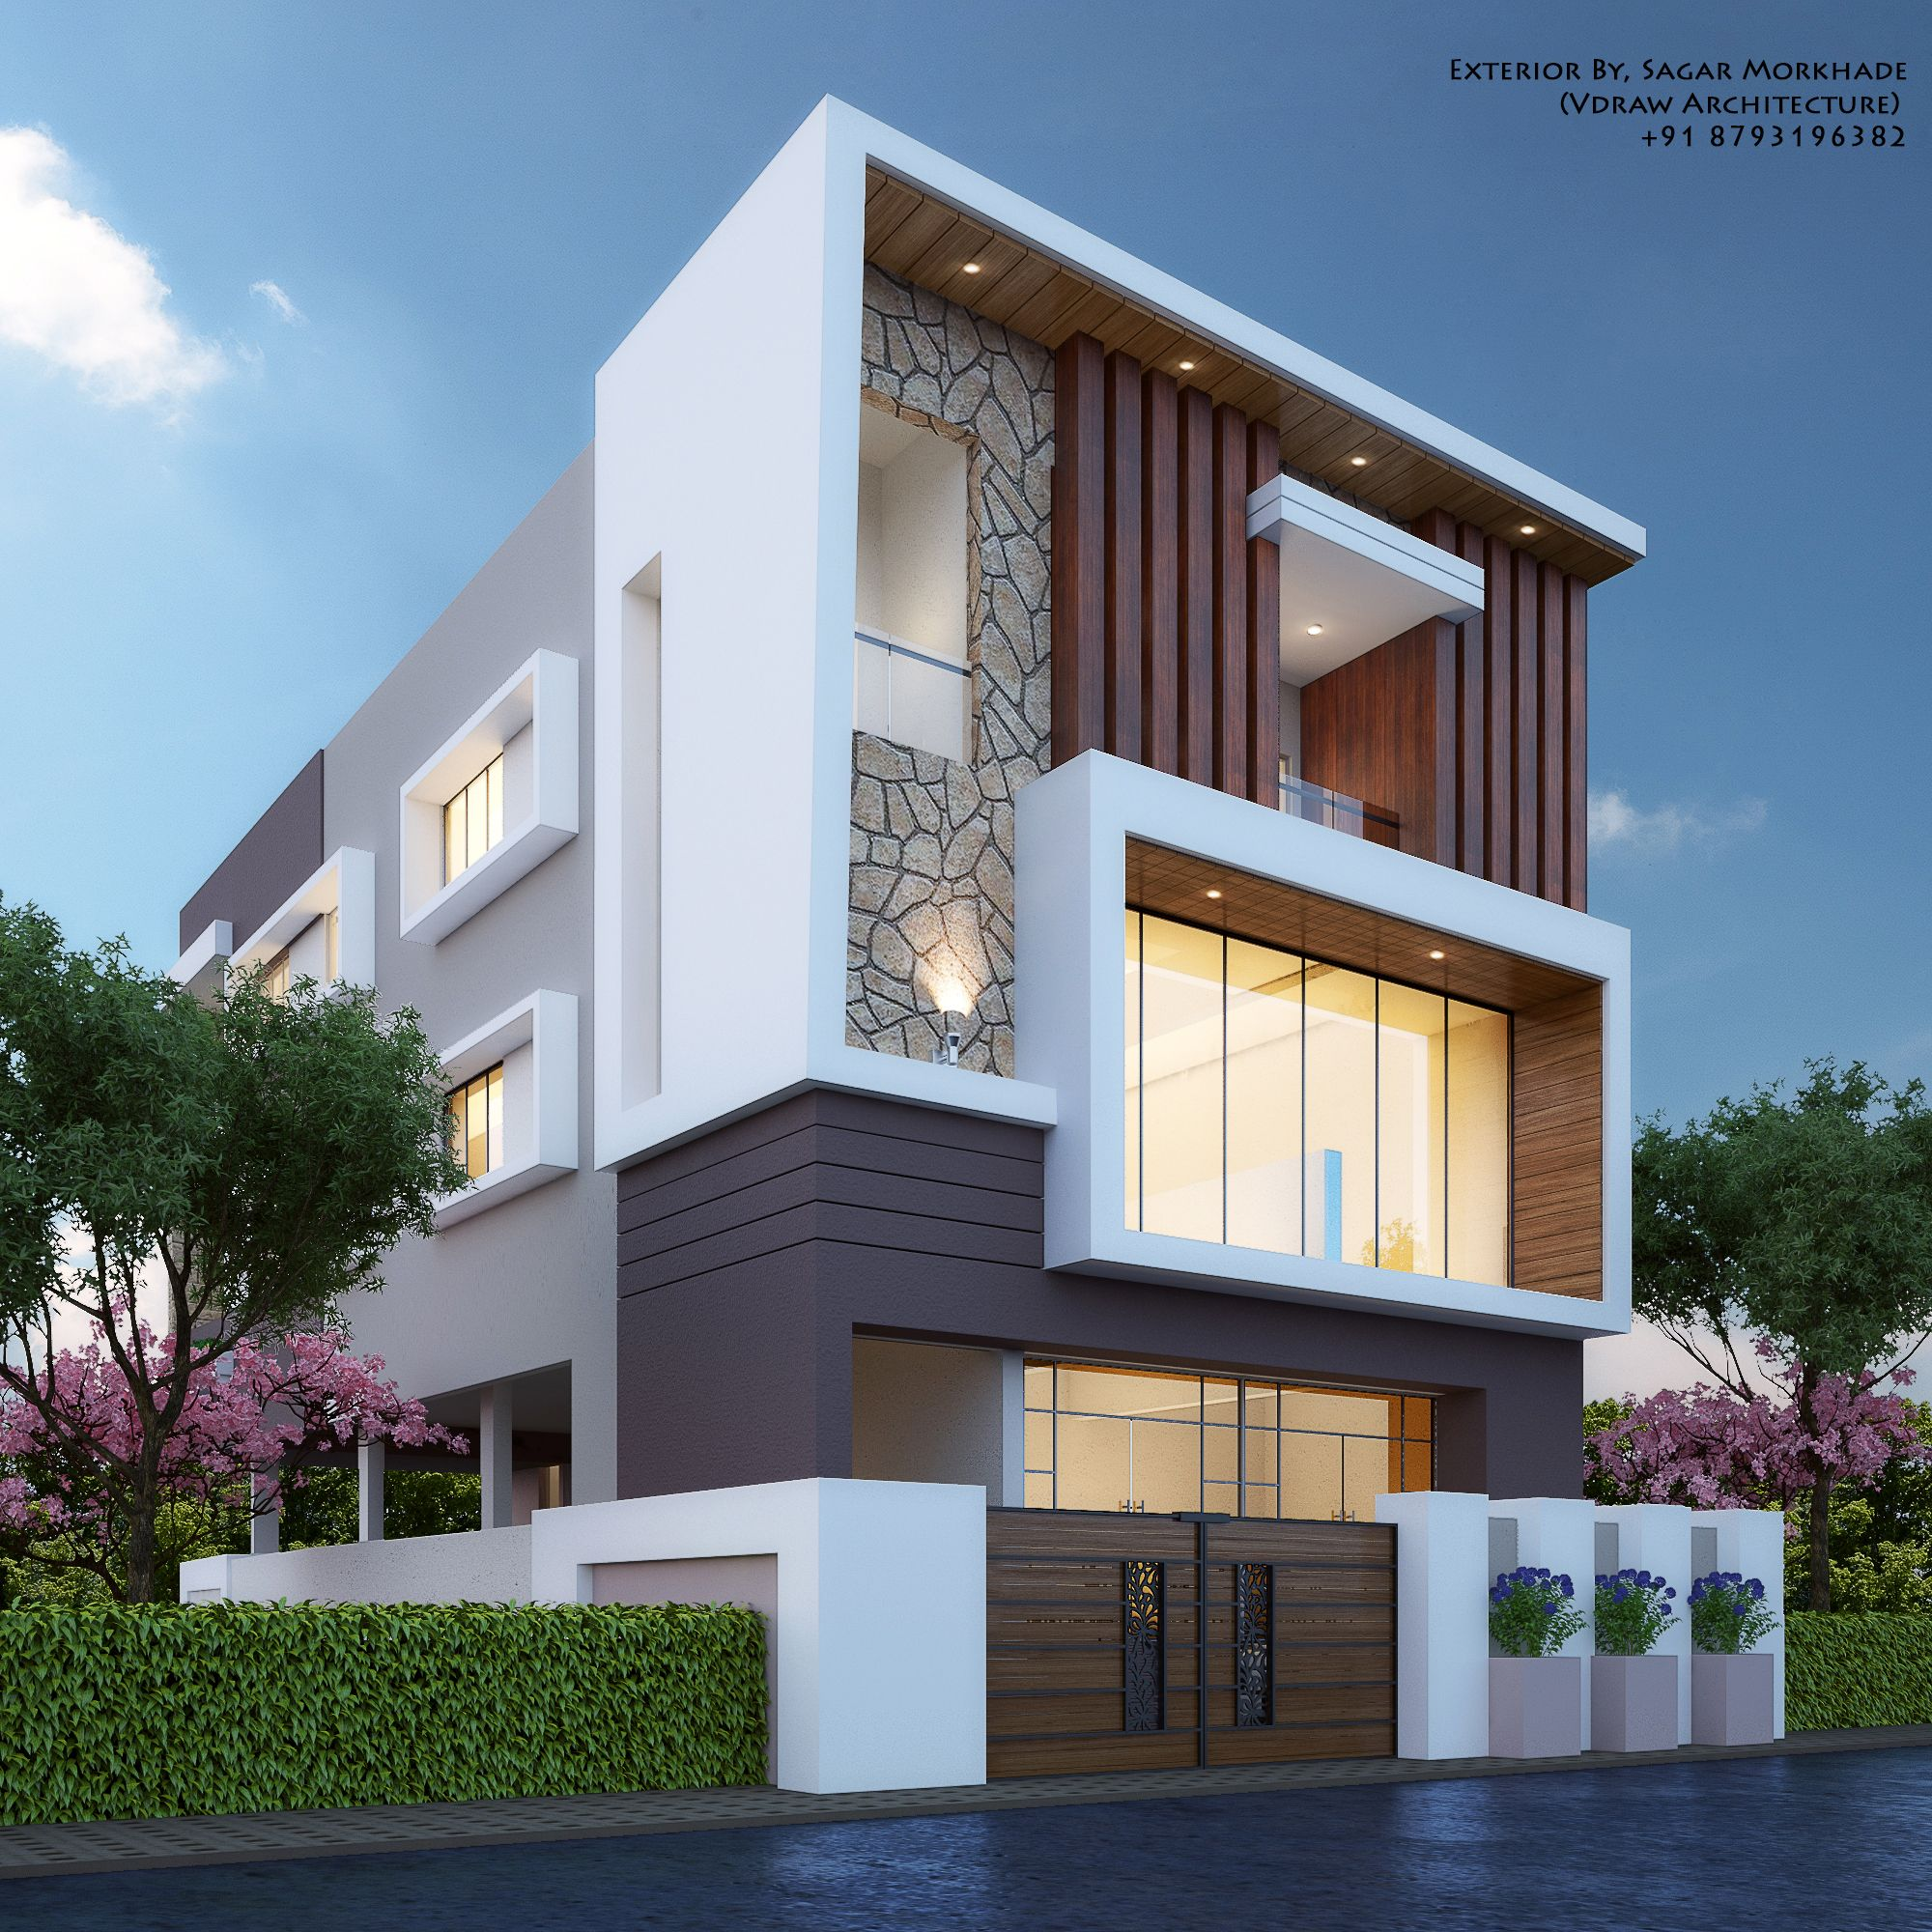 Contemporary Home Design: Modern House Bungalow Exterior By, Sagar Morkhade (Vdraw